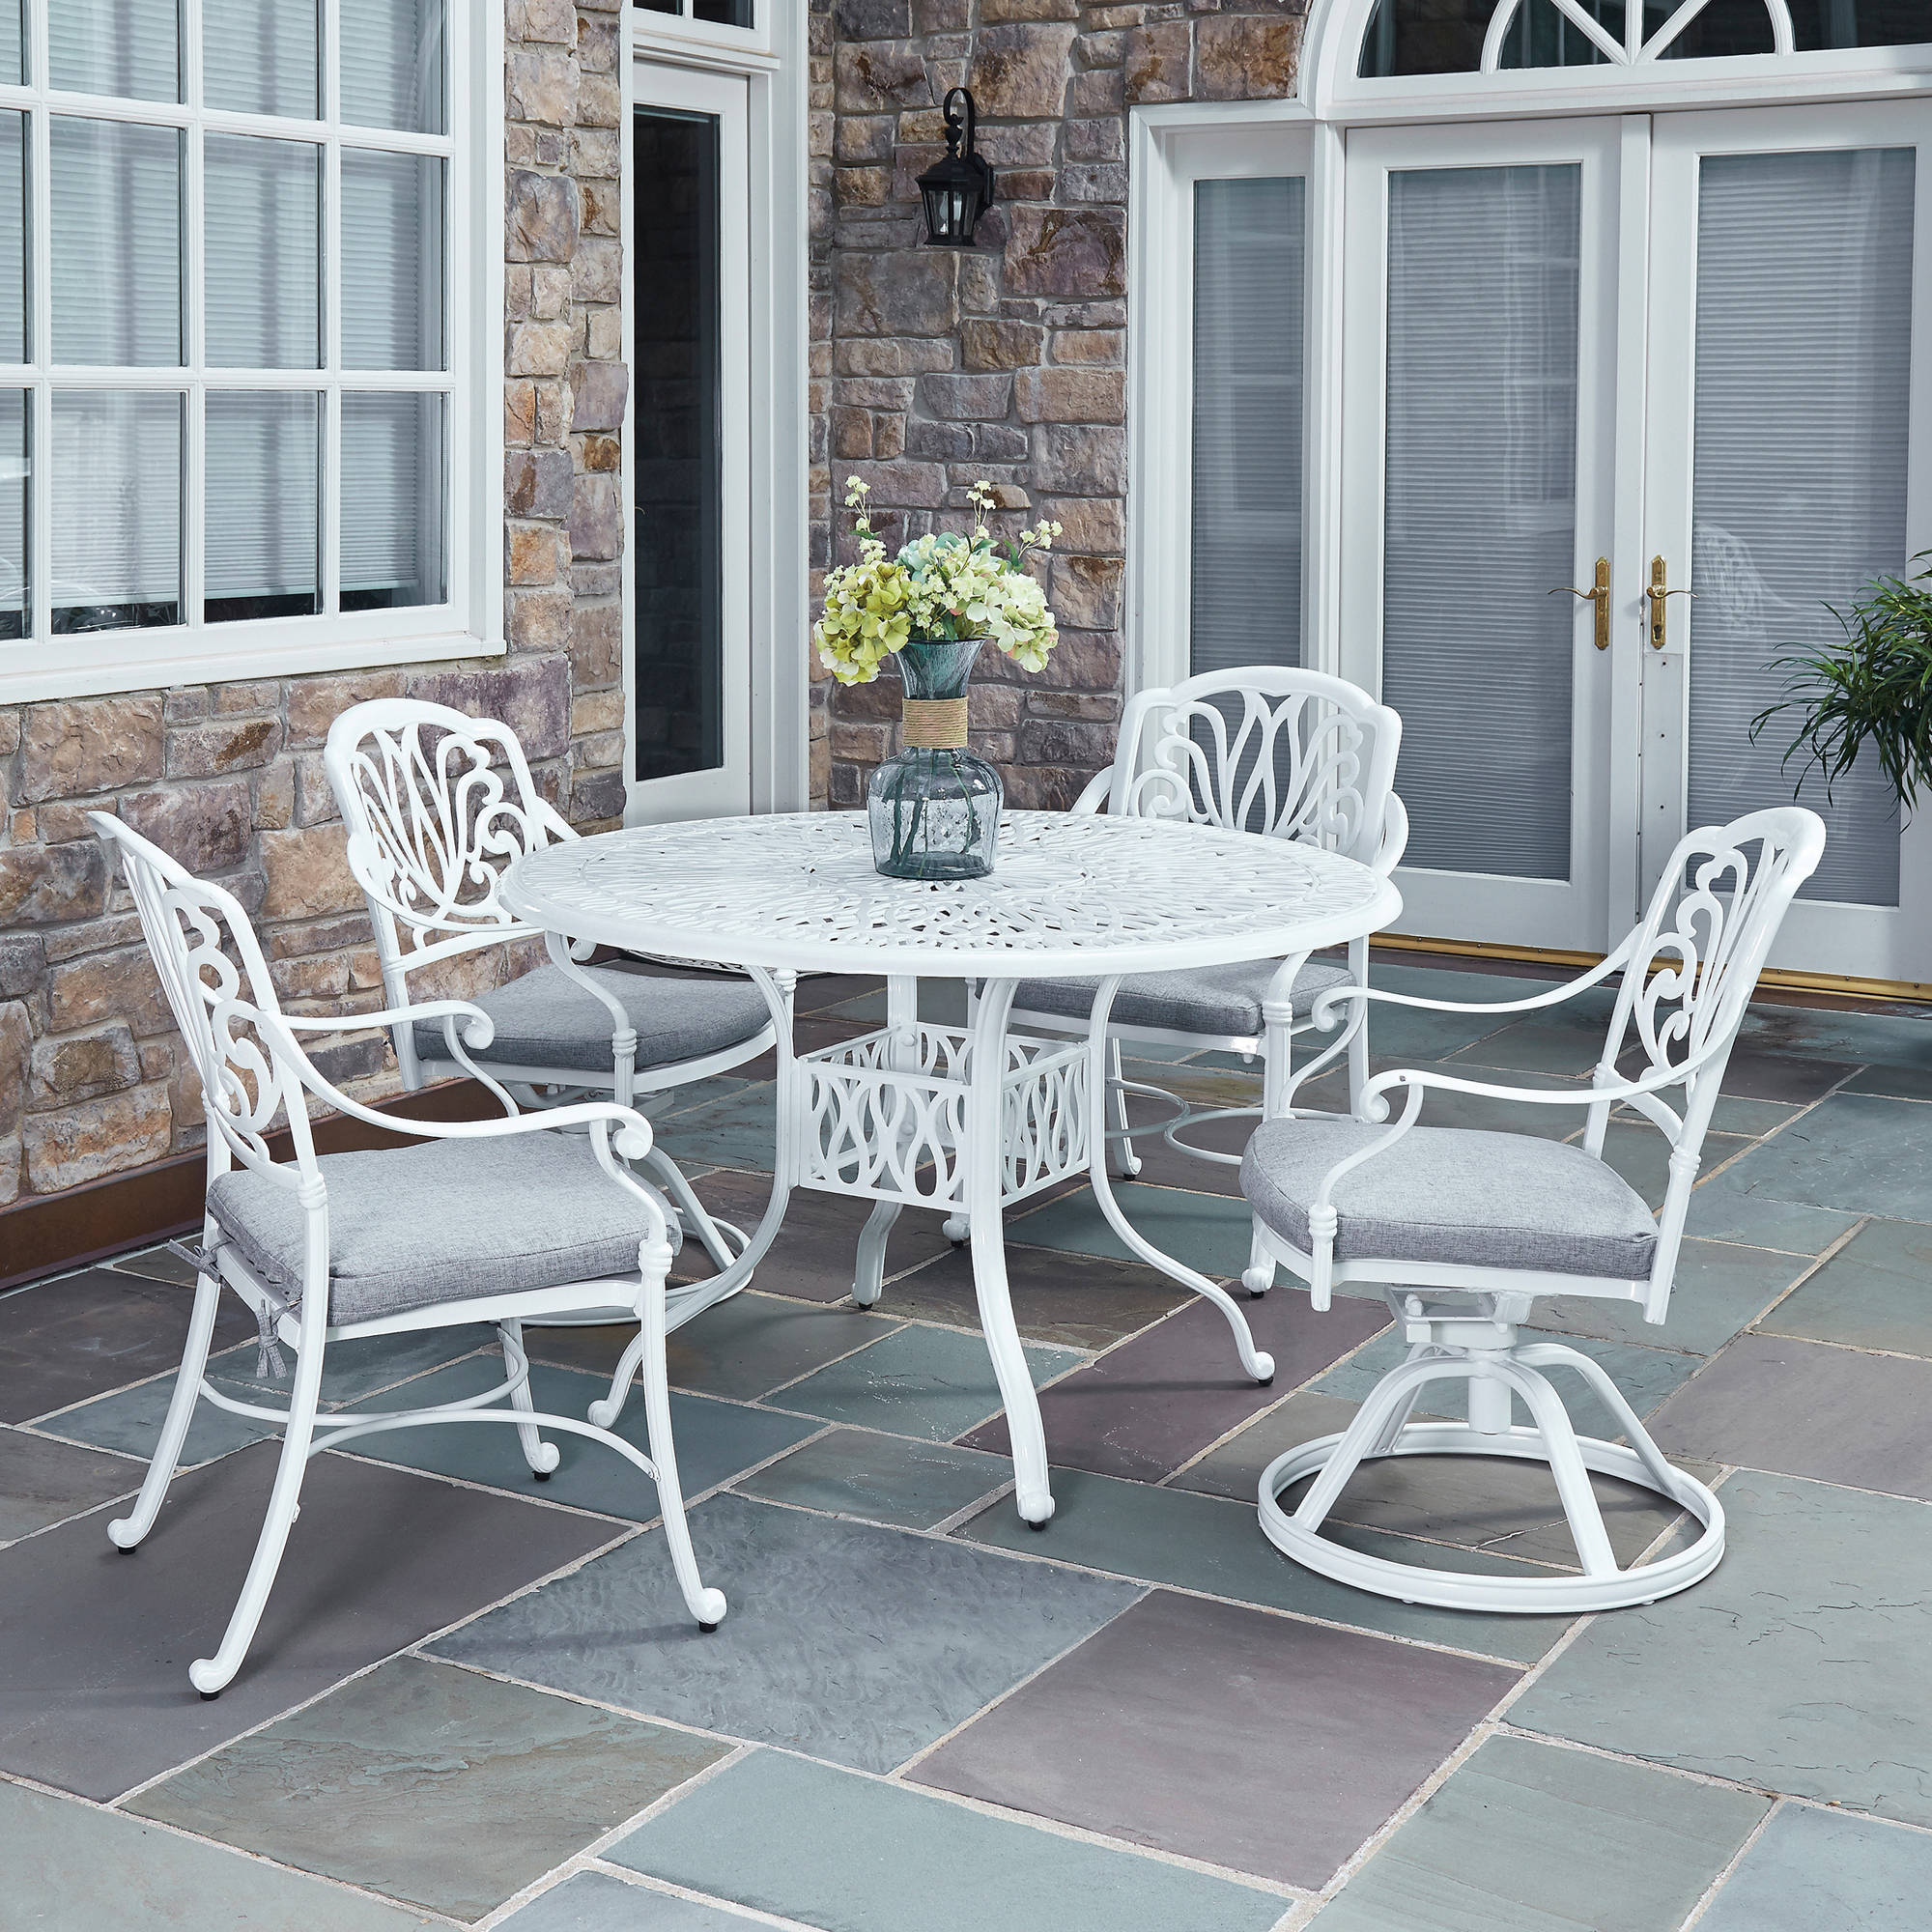 Floral Blossom 5-Pc Patio White Dining Set